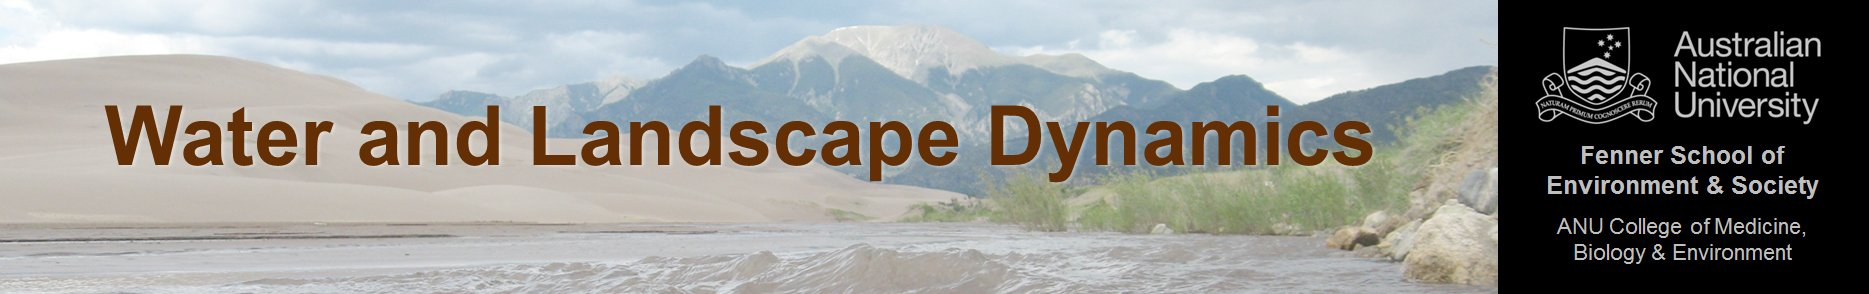 Water and Landscape Dynamics Group